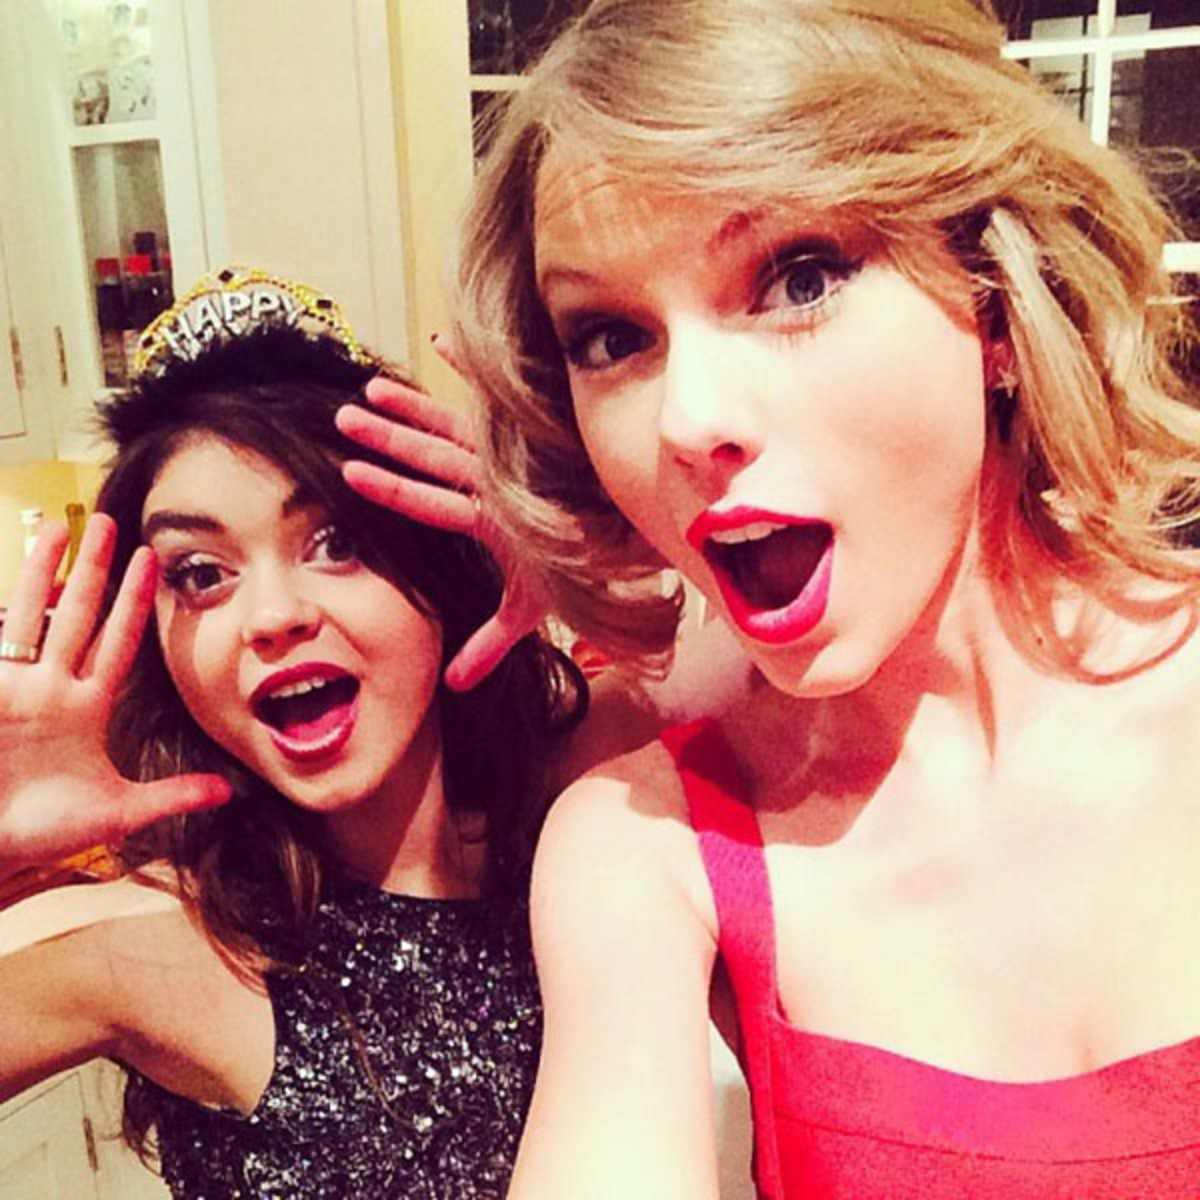 New Year's beauty resolutions - Sarah Hyland and Taylor Swift